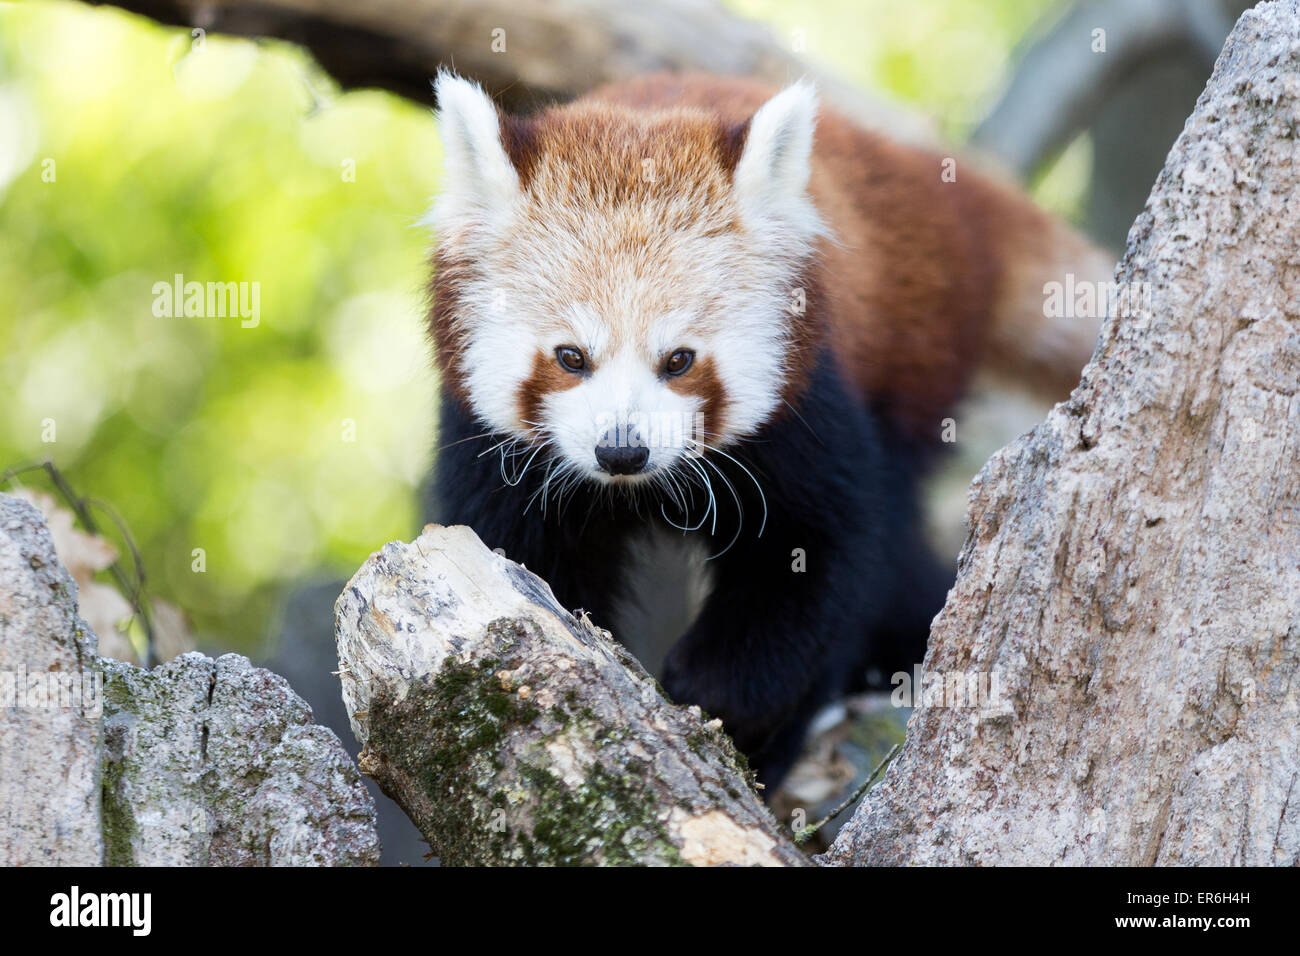 Cumiana, Italy. 27th May, 2015. A red panda puppy at Zoom Torino. There are two red panda male puppies of Yangon - Stock Image